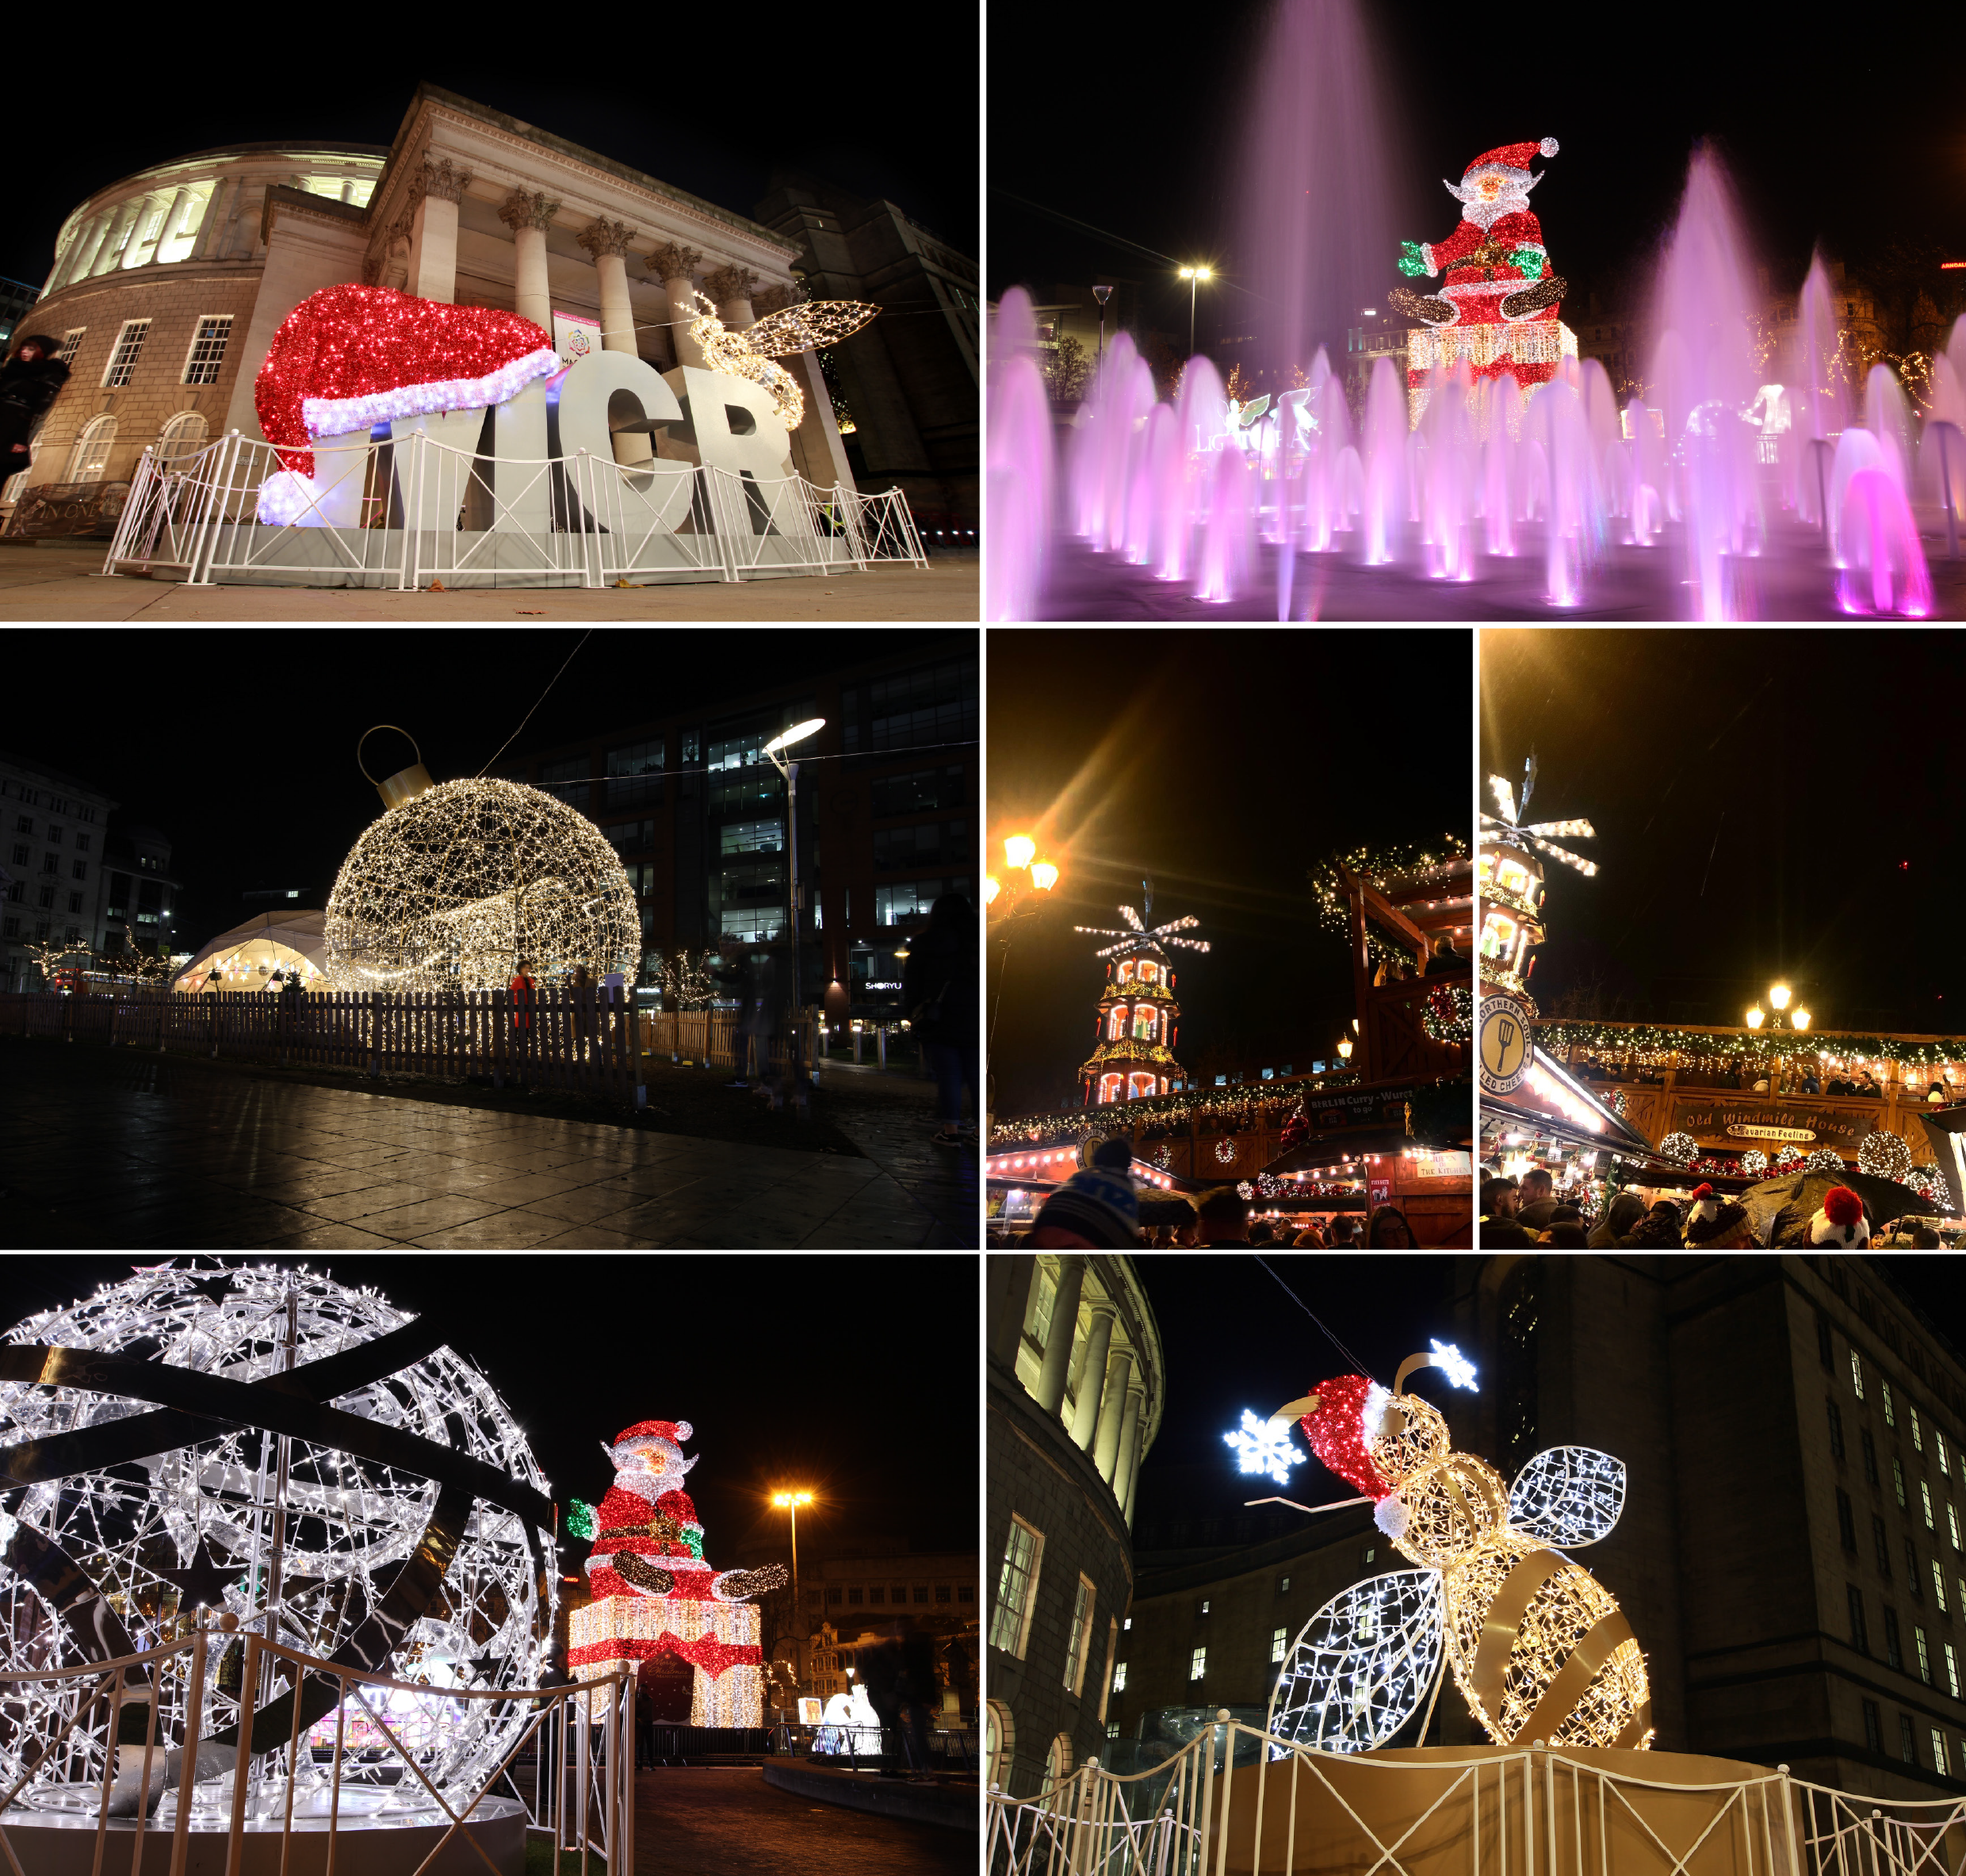 Manchester Christmas light displays and markets at night